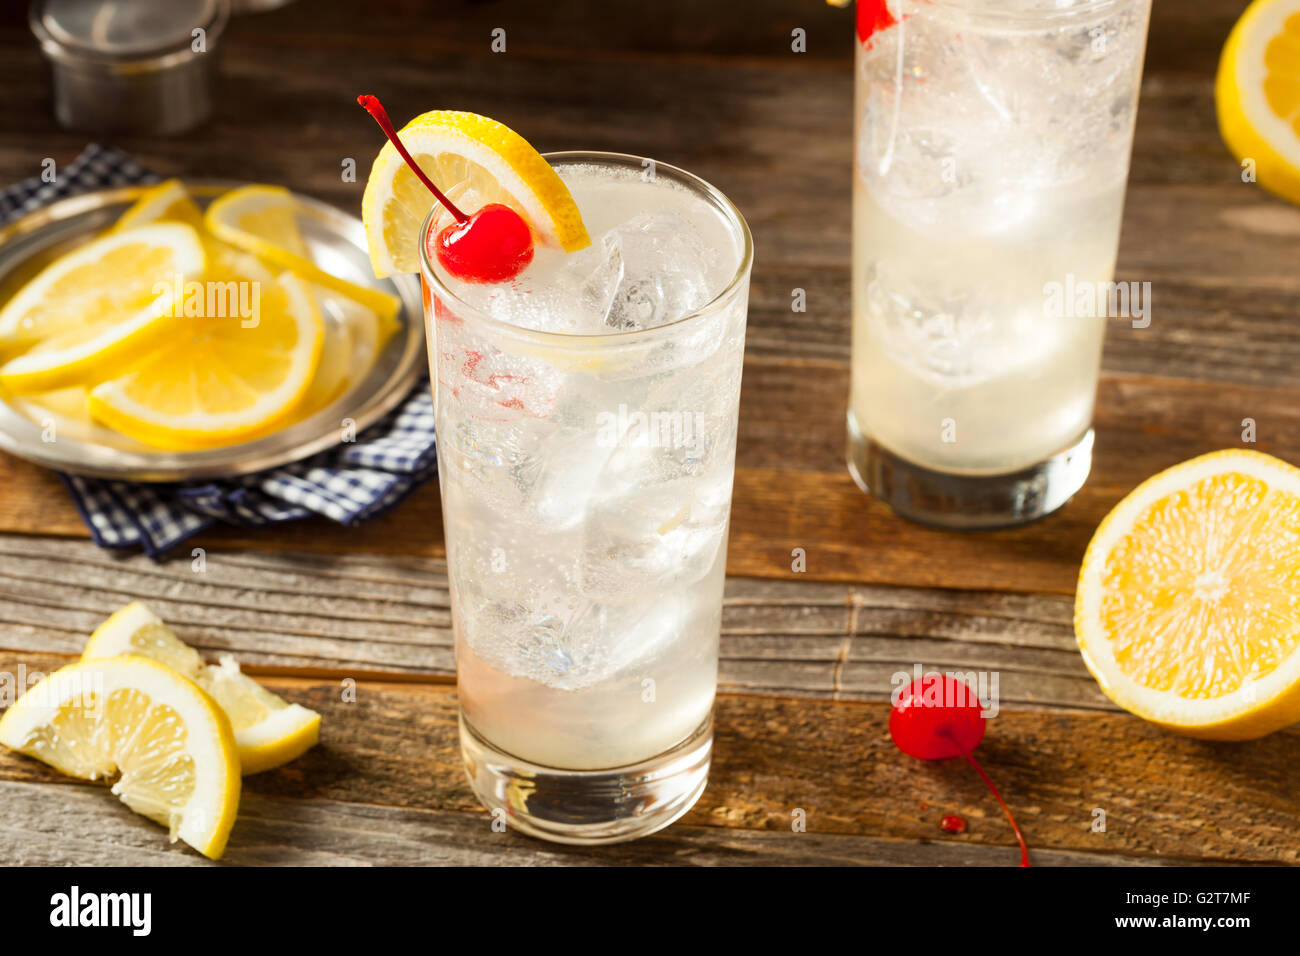 Refreshing Classic Tom Collins Cocktail with a Cherry and Lemon Slice - Stock Image